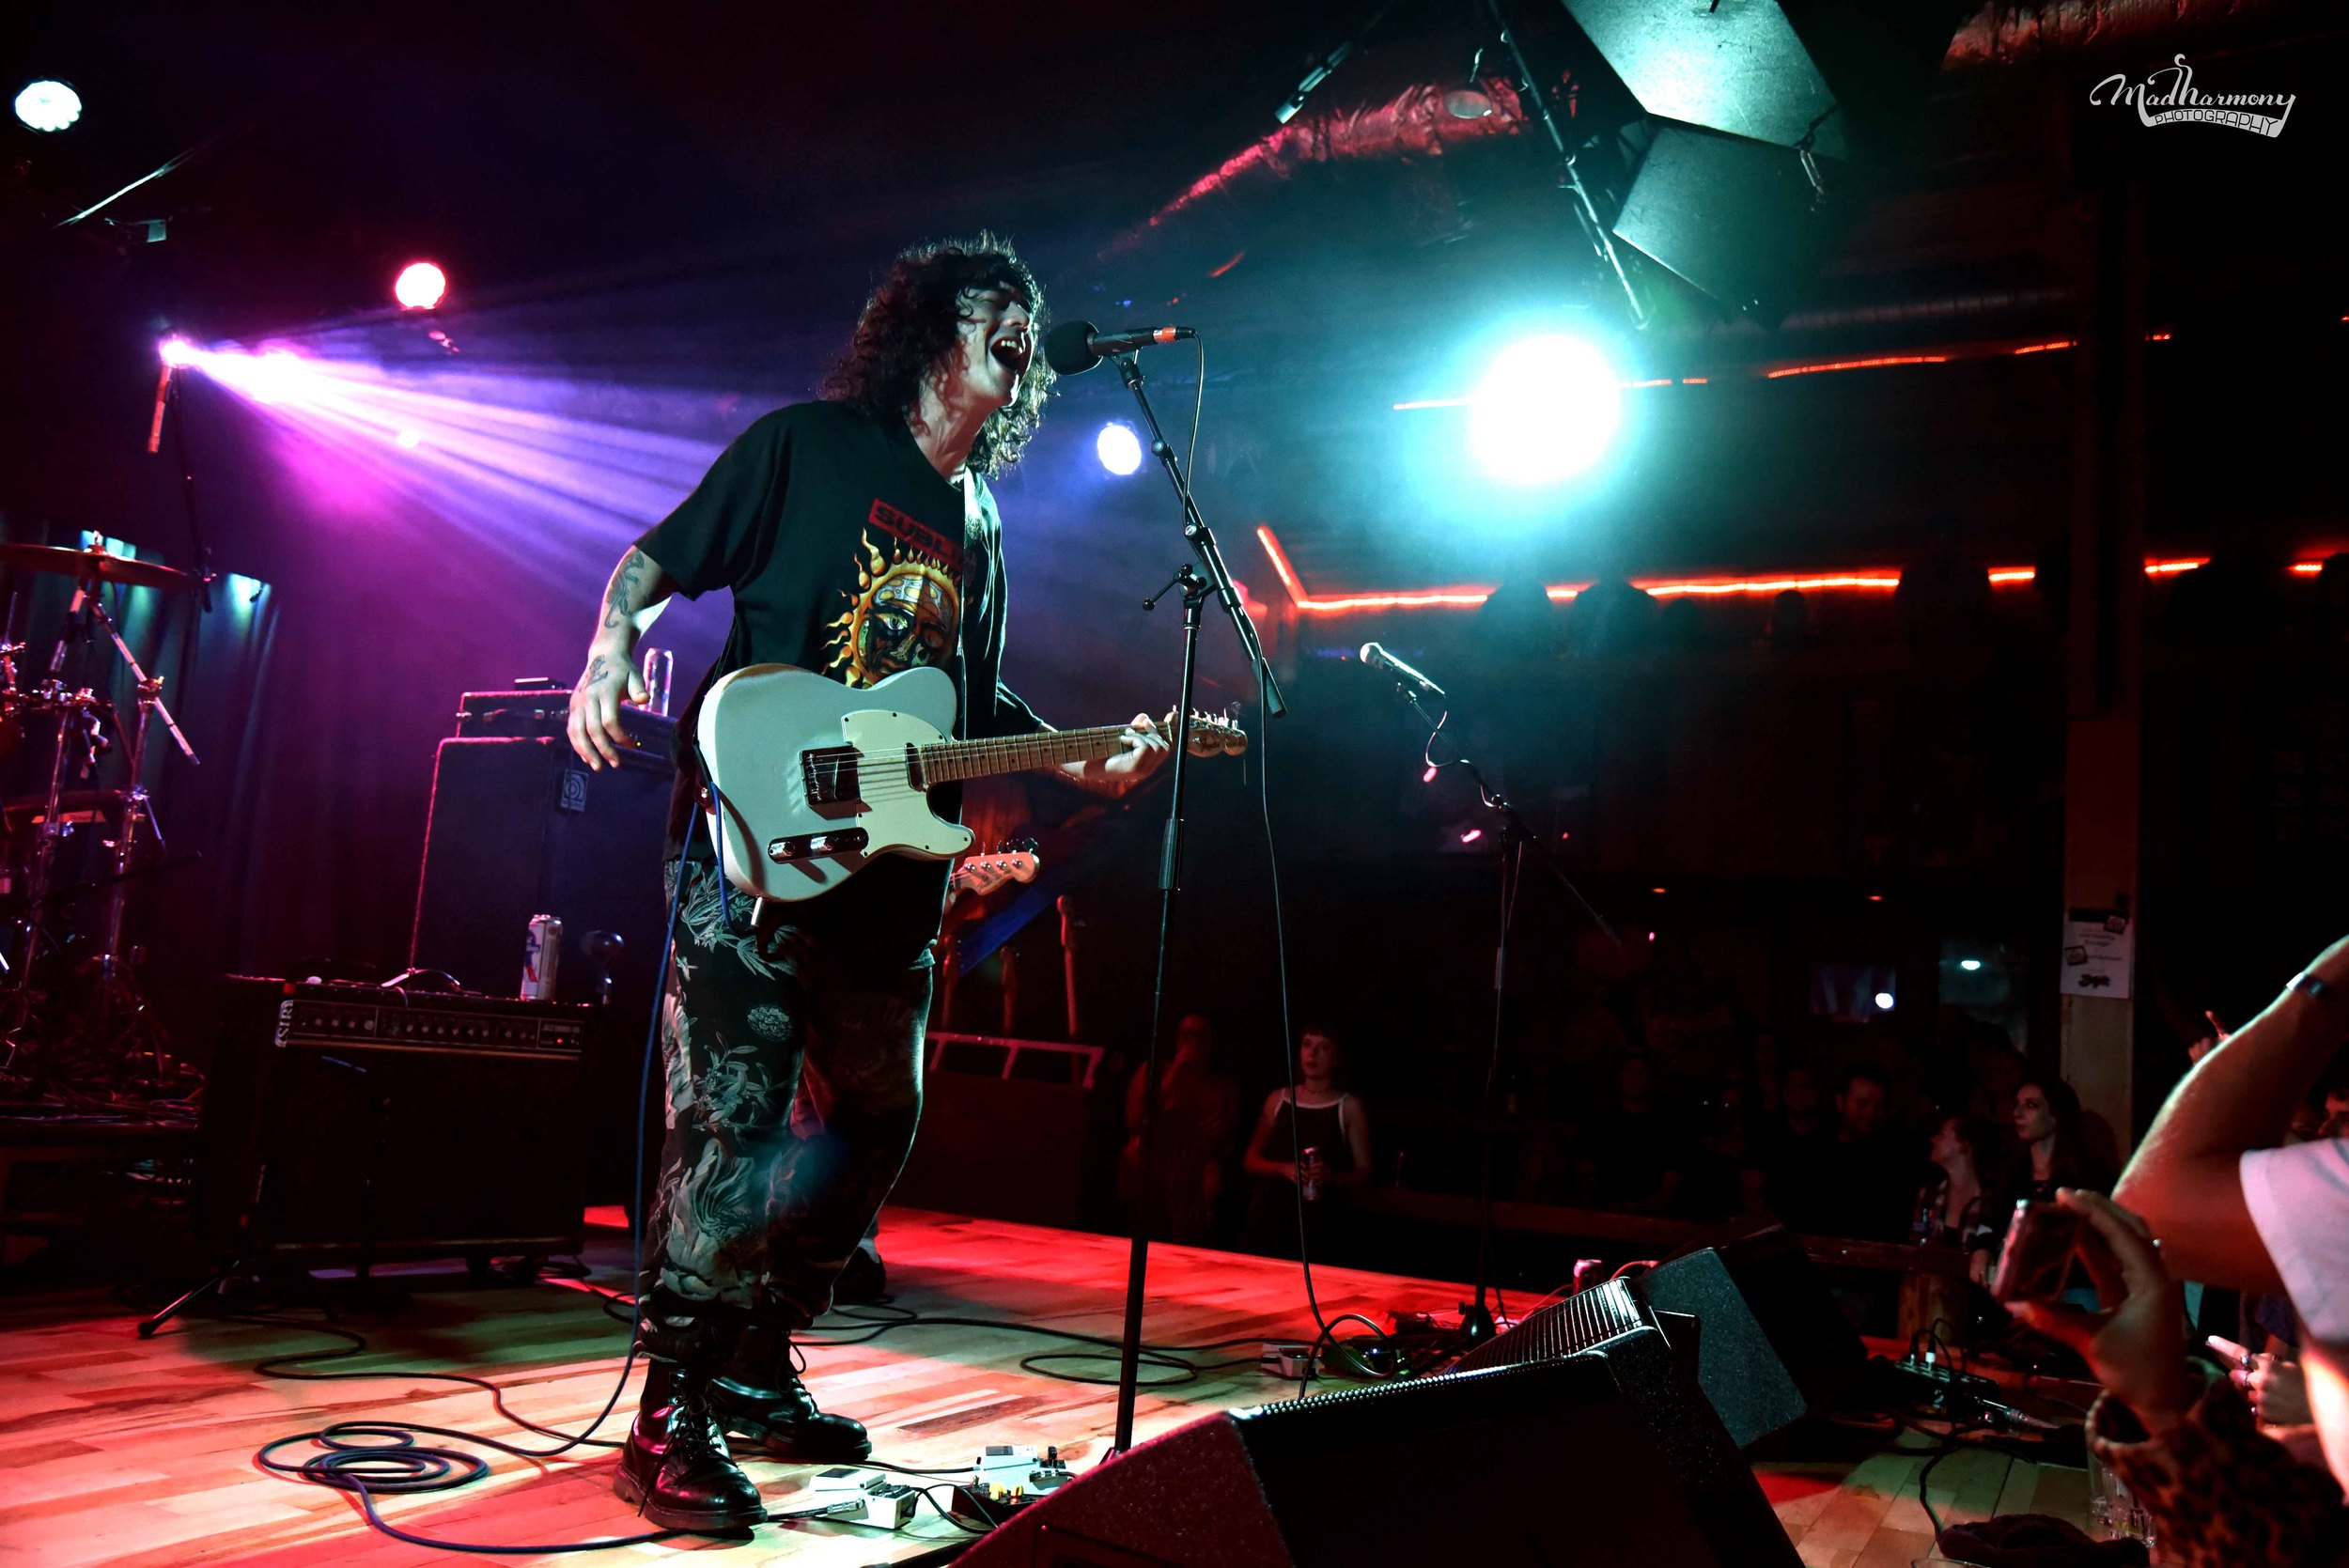 Sticky Fingers / 05.25.16 / Belly Up, Solana Beach, CA